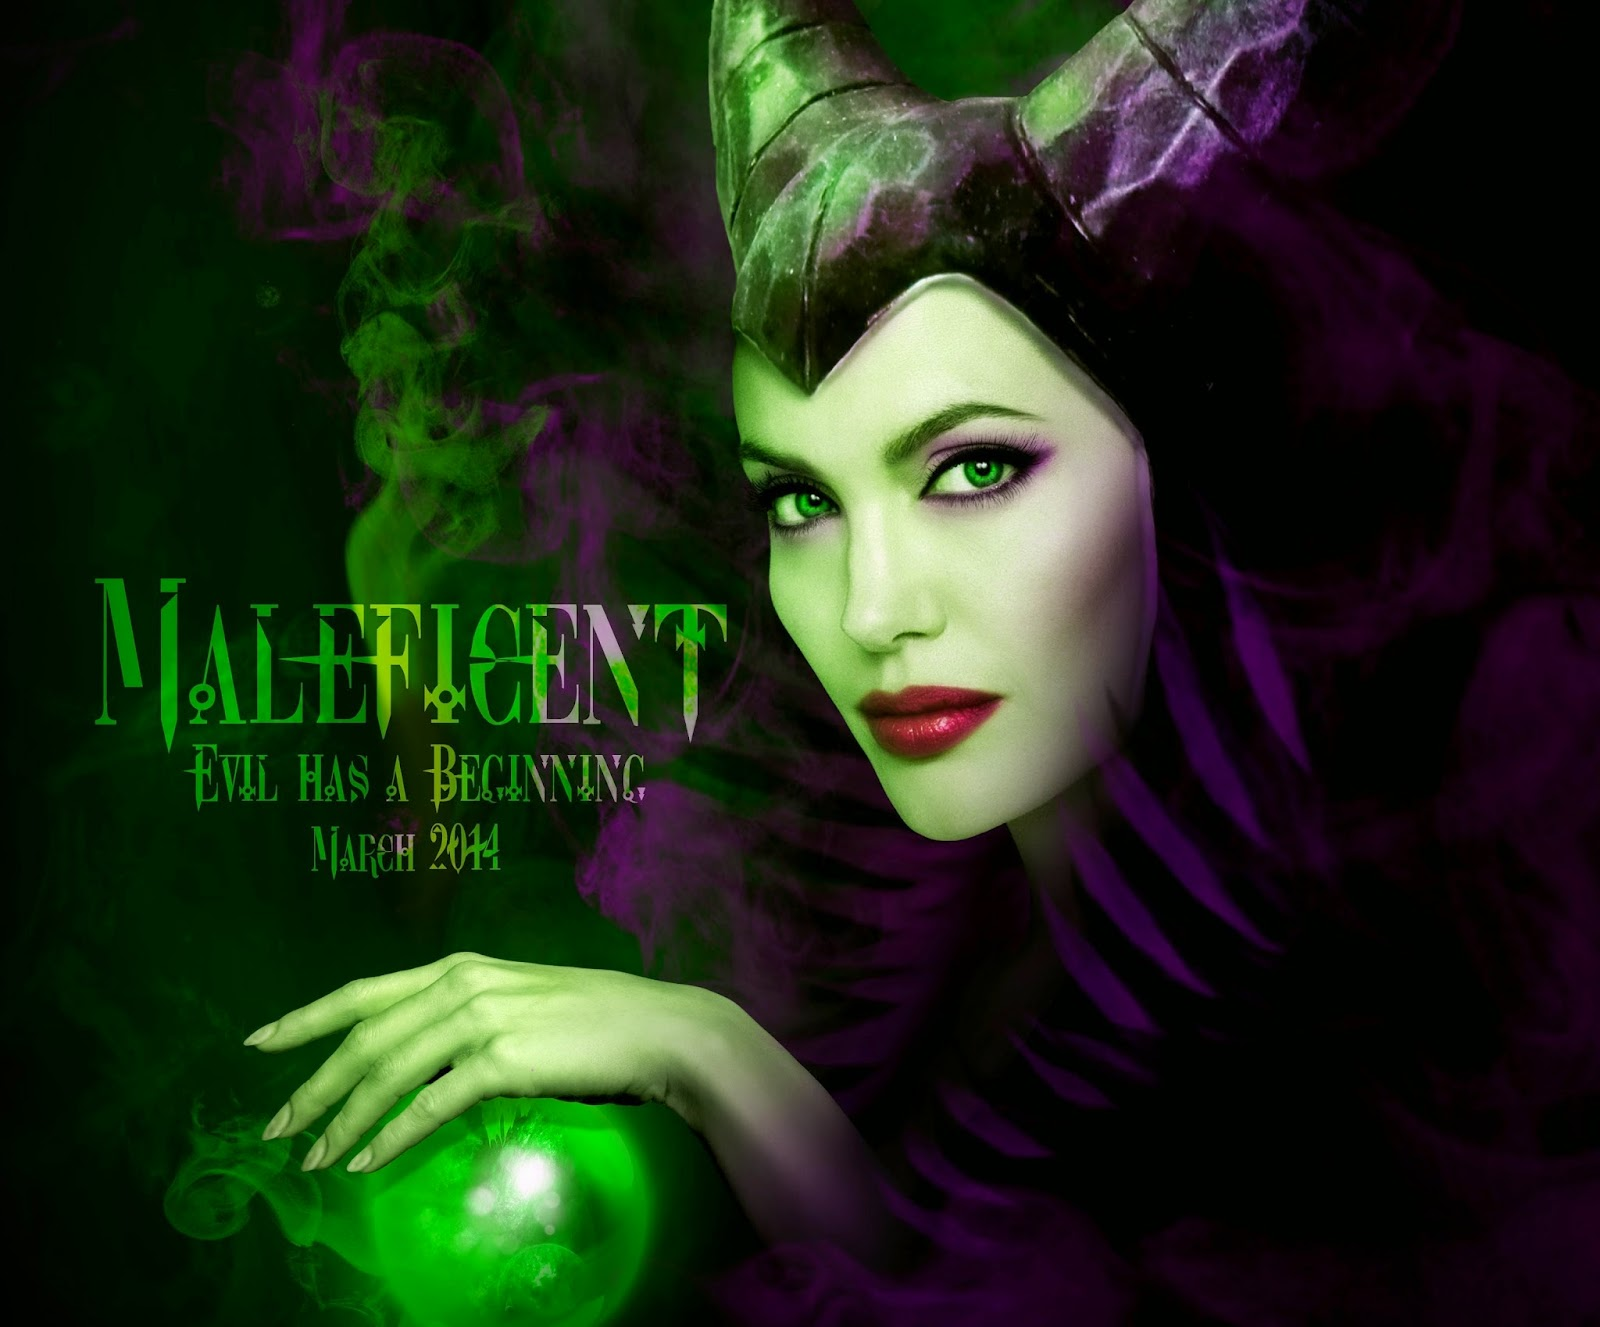 Maleficent Movie 2014 Hd Ipad Iphone Wallpapers: The Write Things: Maleficent: Good But Misunderstood?